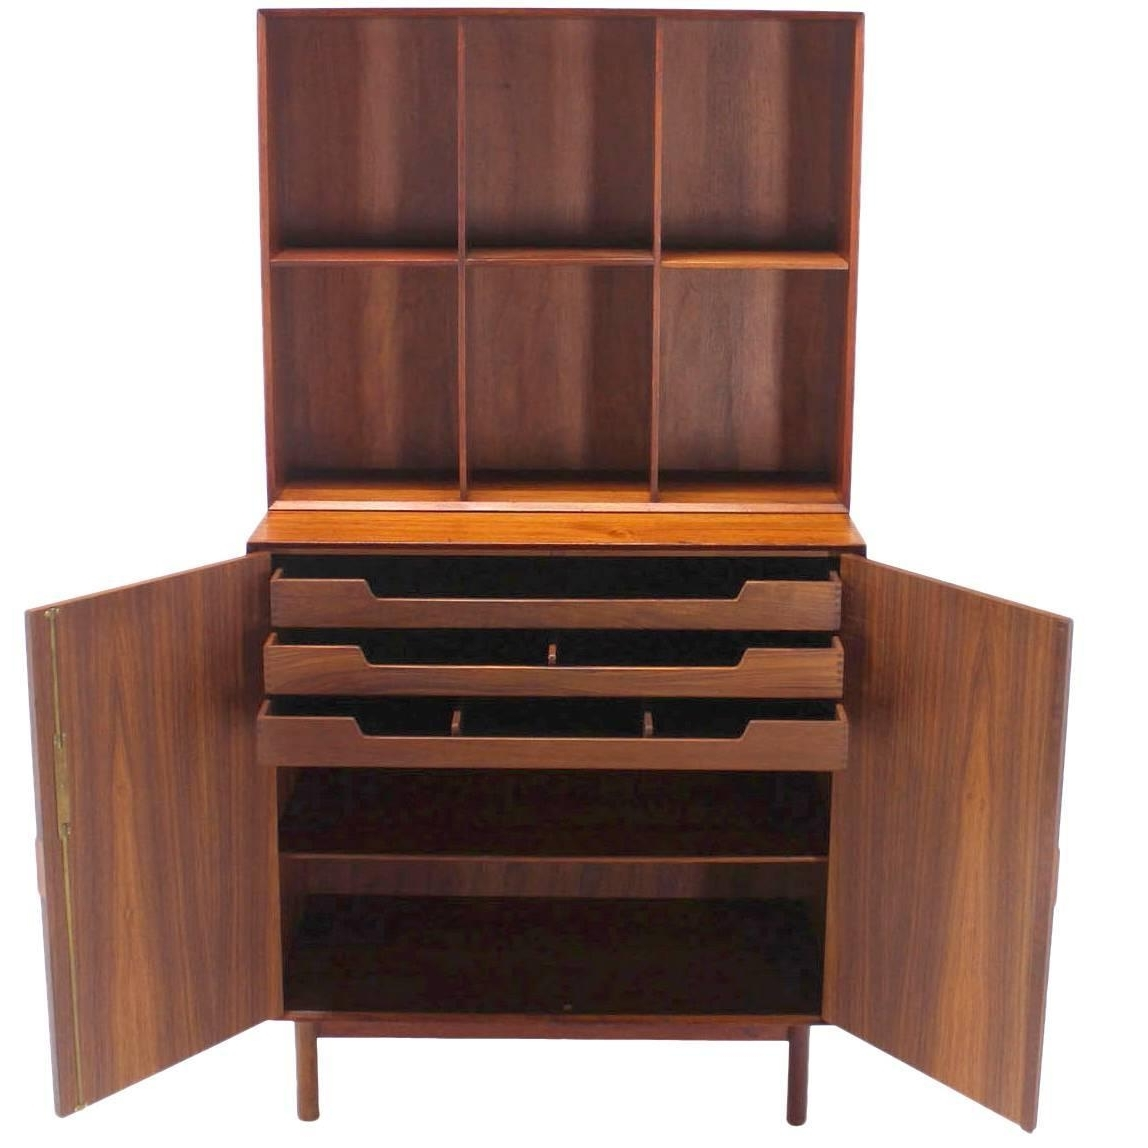 Teak Bookcasespeter Hvidt For Soborg For Sale At 1stdibs Throughout Widely Used Teak Bookcases (View 11 of 15)